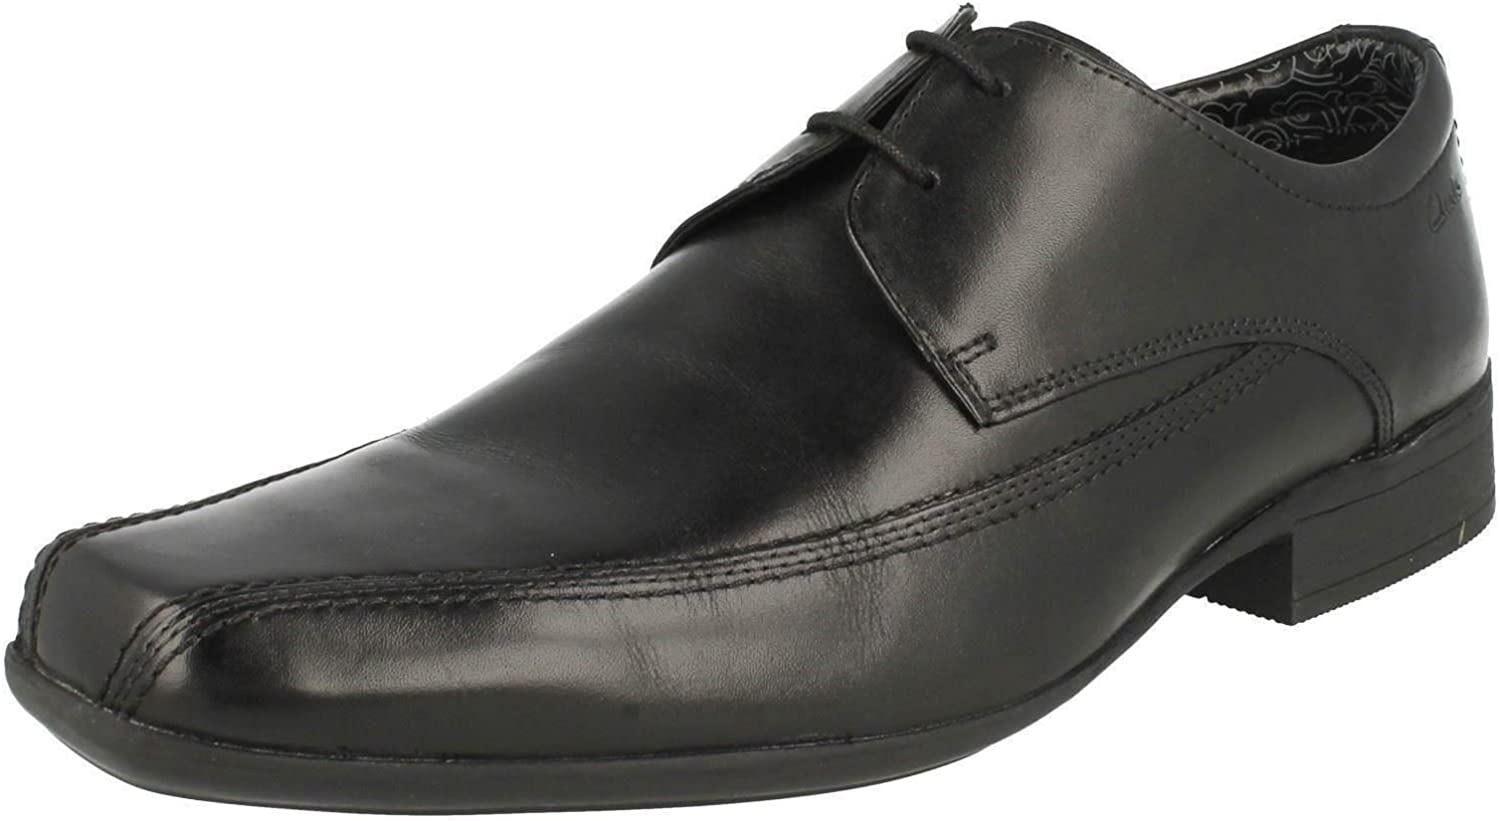 Clarks Men's Lace-Up Derby shoes Aze Day Black Leather